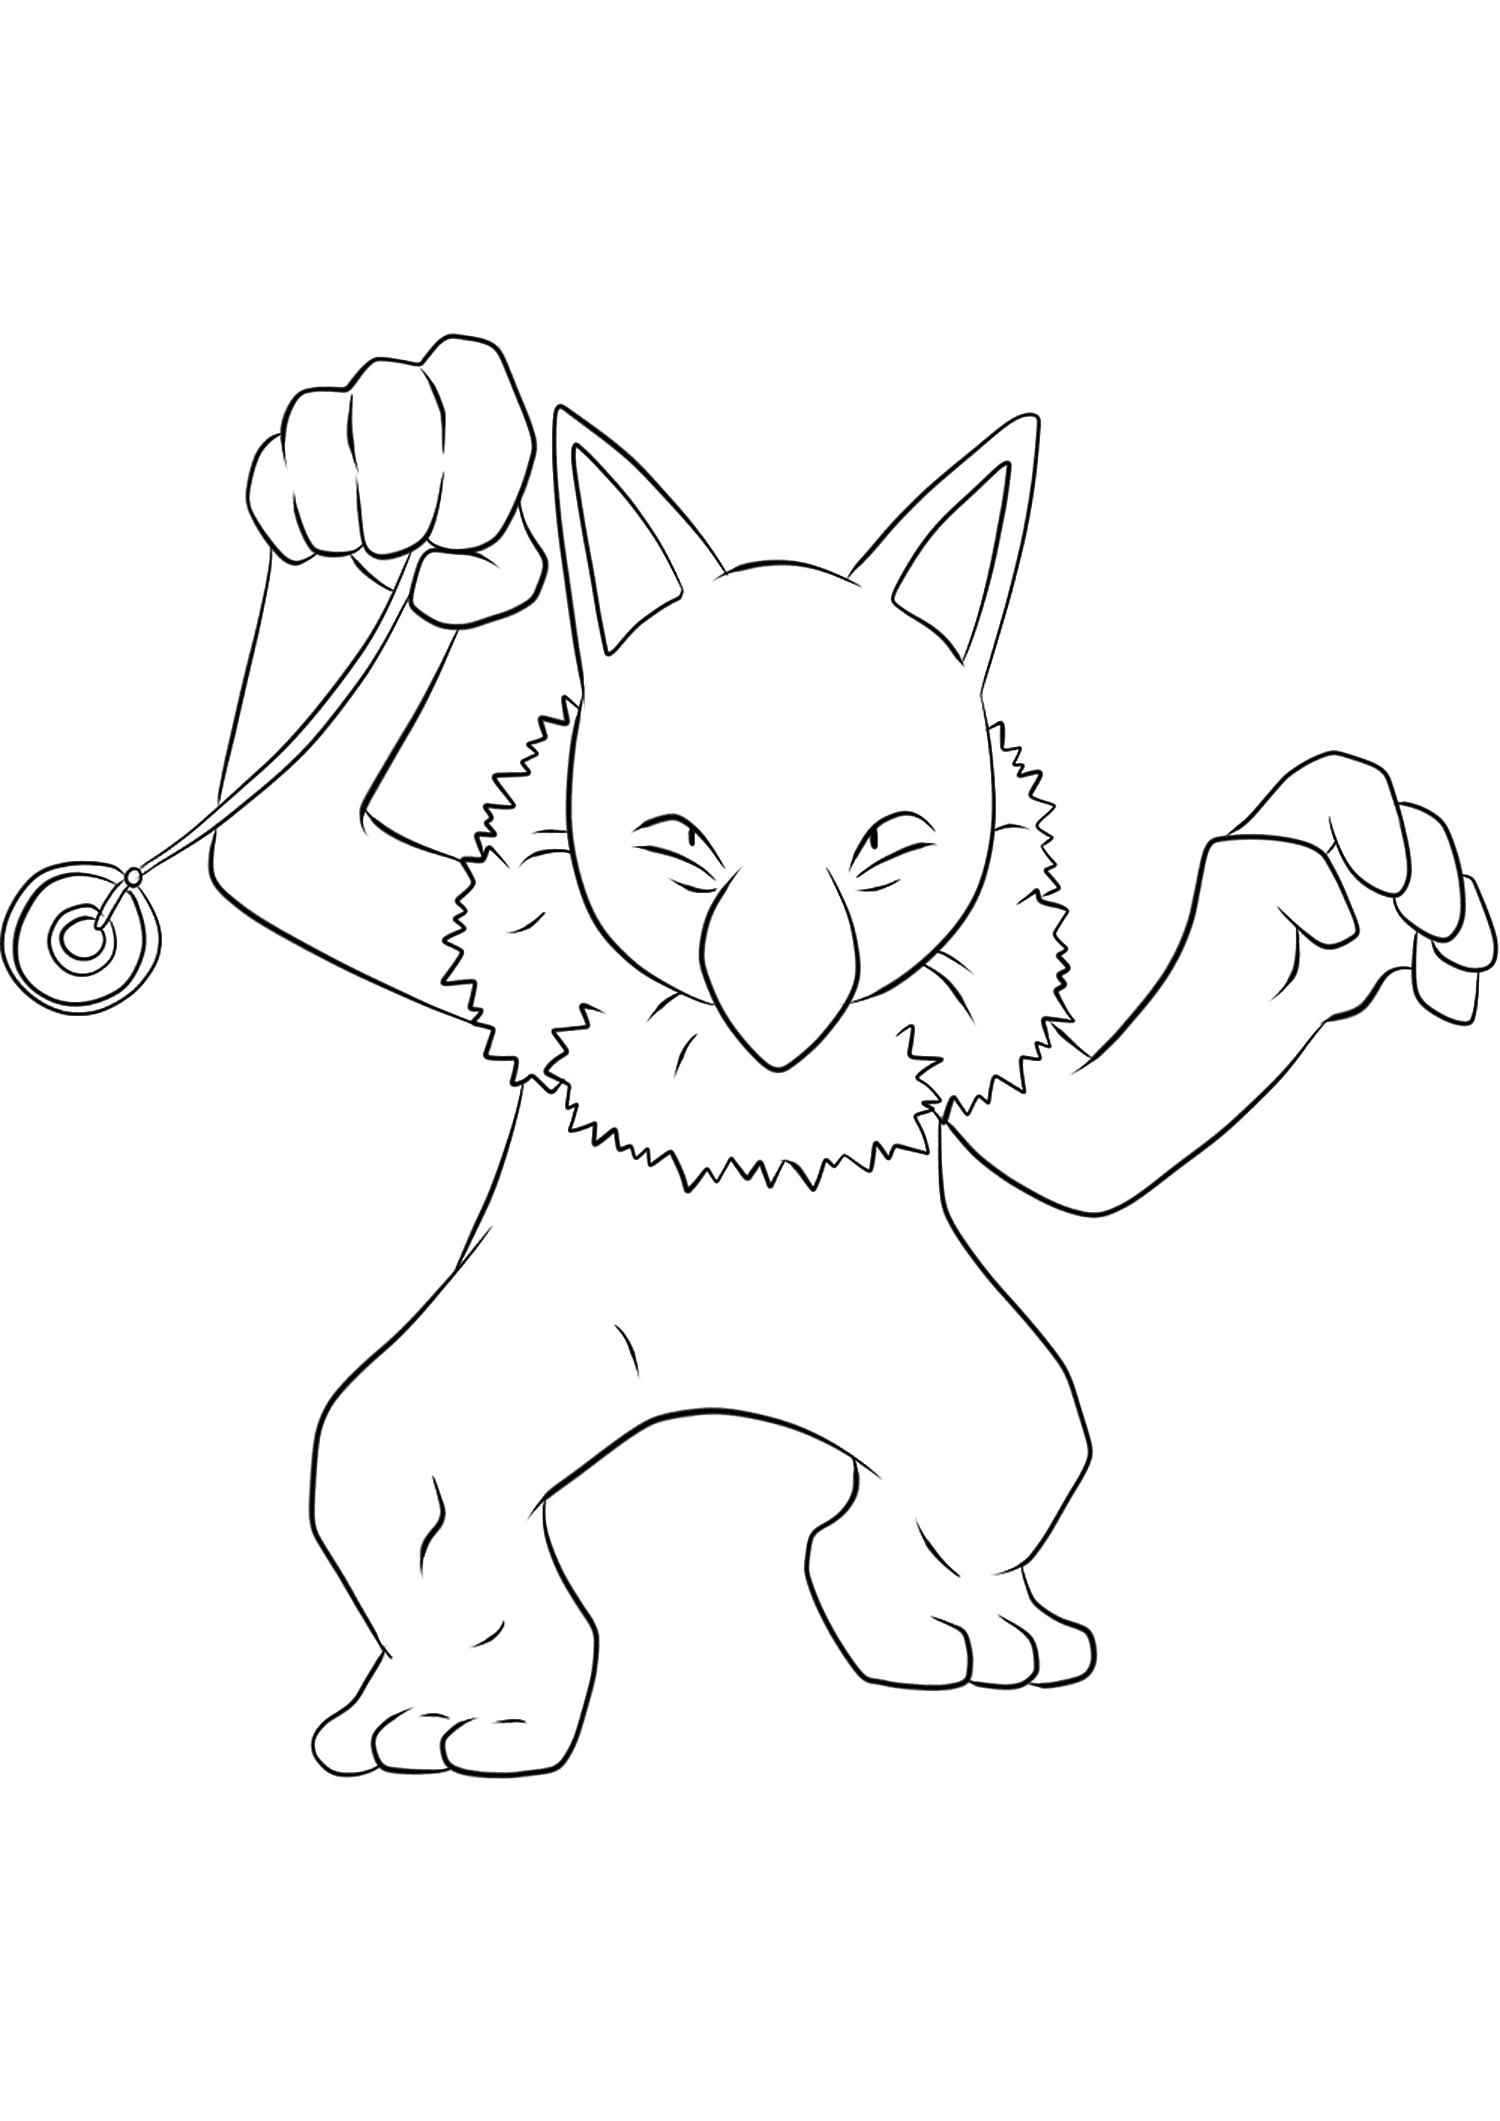 Hypnomade (No.97)Coloriage de Hypnomade (Hypno), Pokémon de Génération I, de type : PsyOriginal image credit: Pokemon linearts by Lilly Gerbil on Deviantart.Permission:  All rights reserved © Pokemon company and Ken Sugimori.